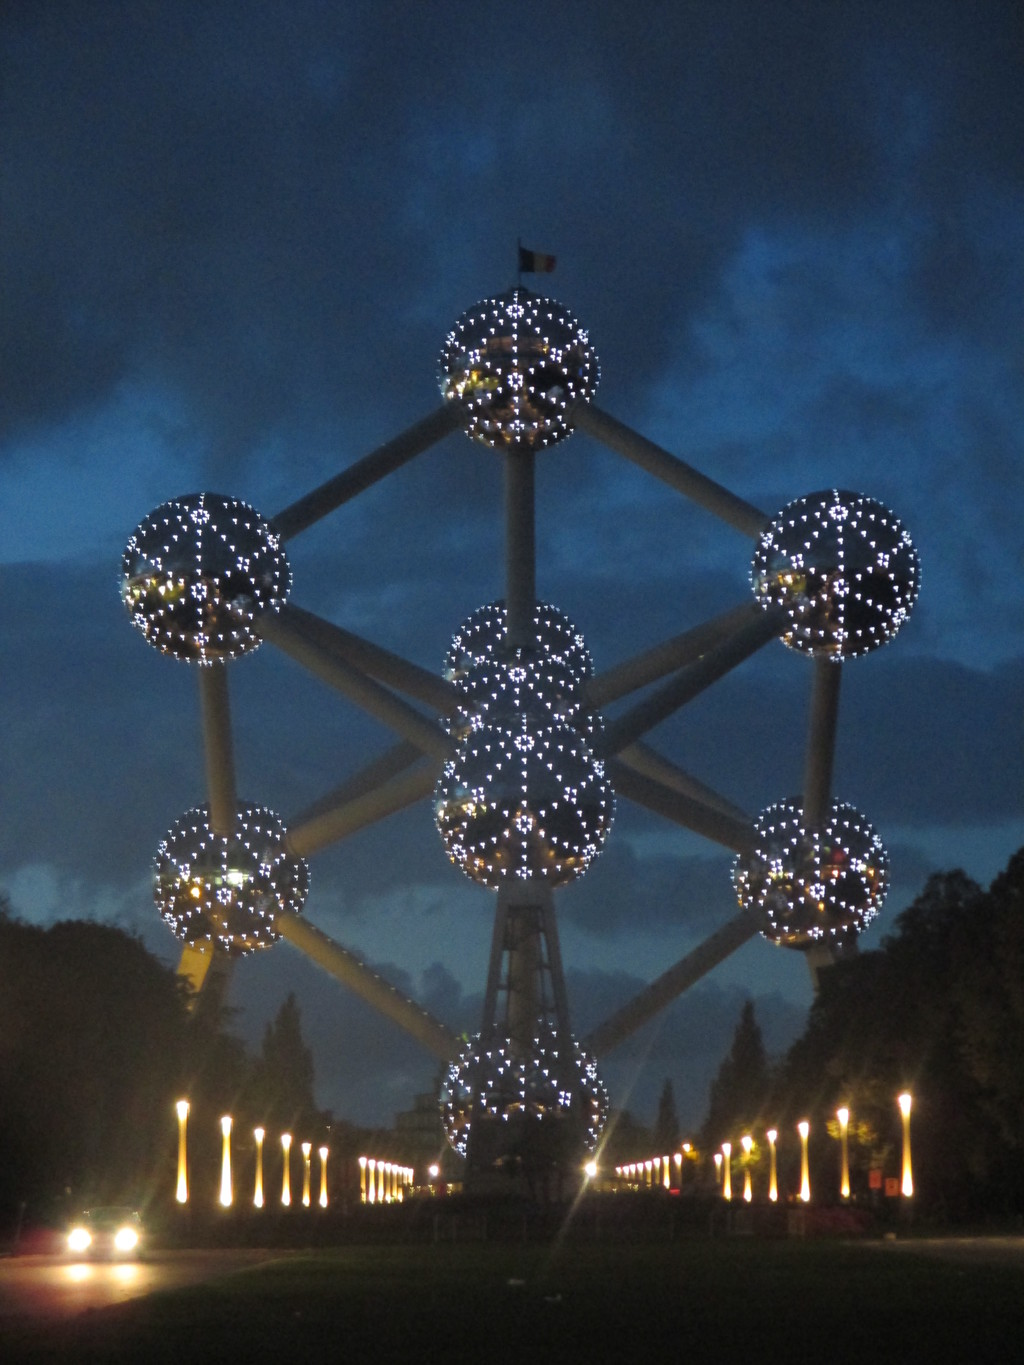 The Atomium, futuristic and timeless